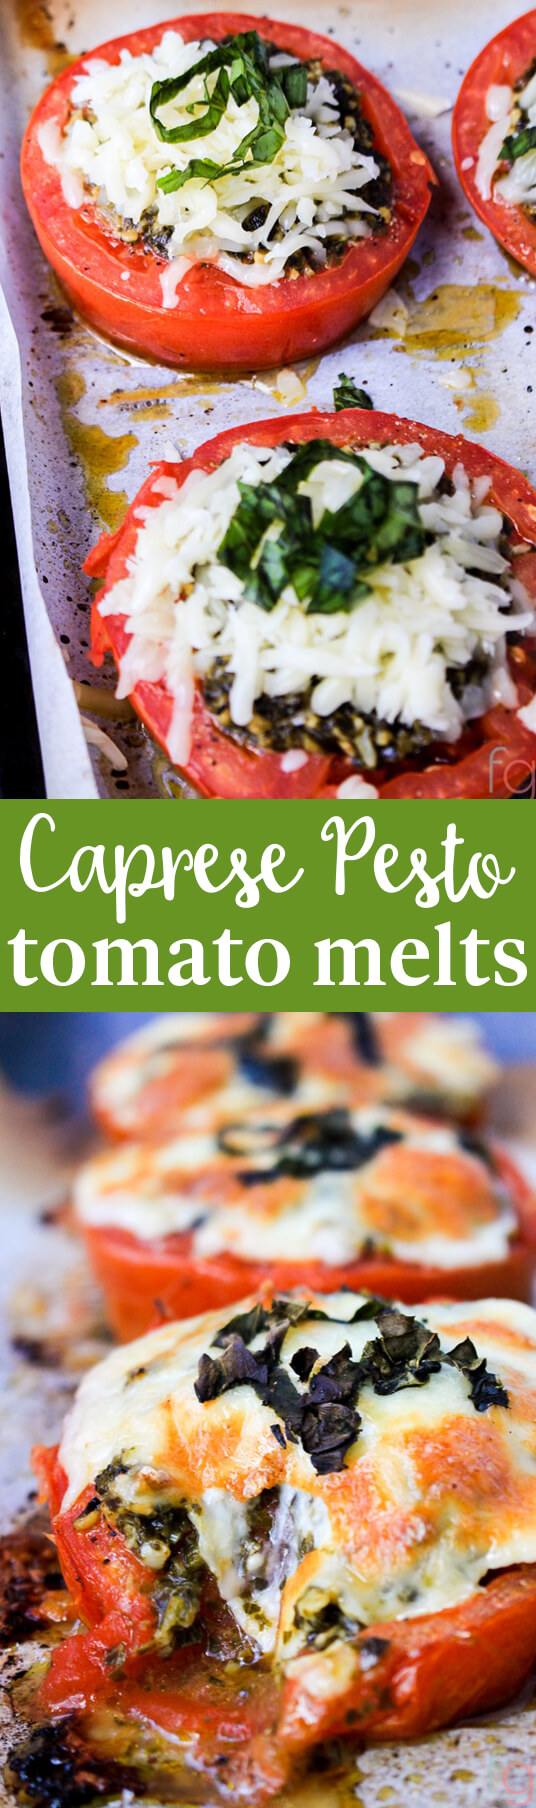 Healthy Snack | Healthy Recipes | Easy Recipes | Caprese Pesto Tomato Recipes | Easy Side Dishes | Appetizers